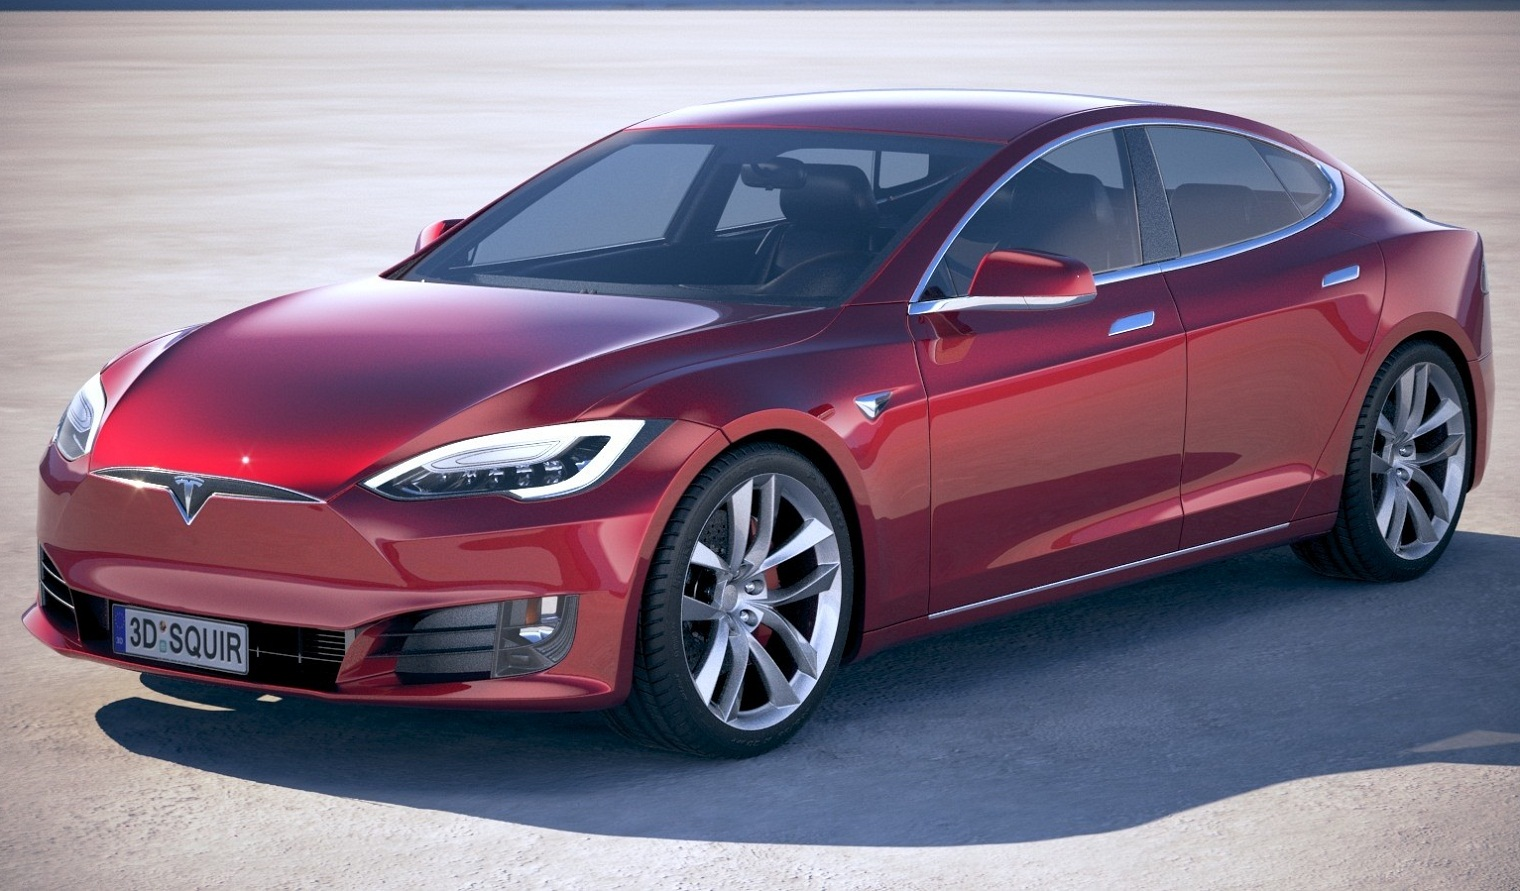 Government Investigates Teslas That Accelerated on Their Own